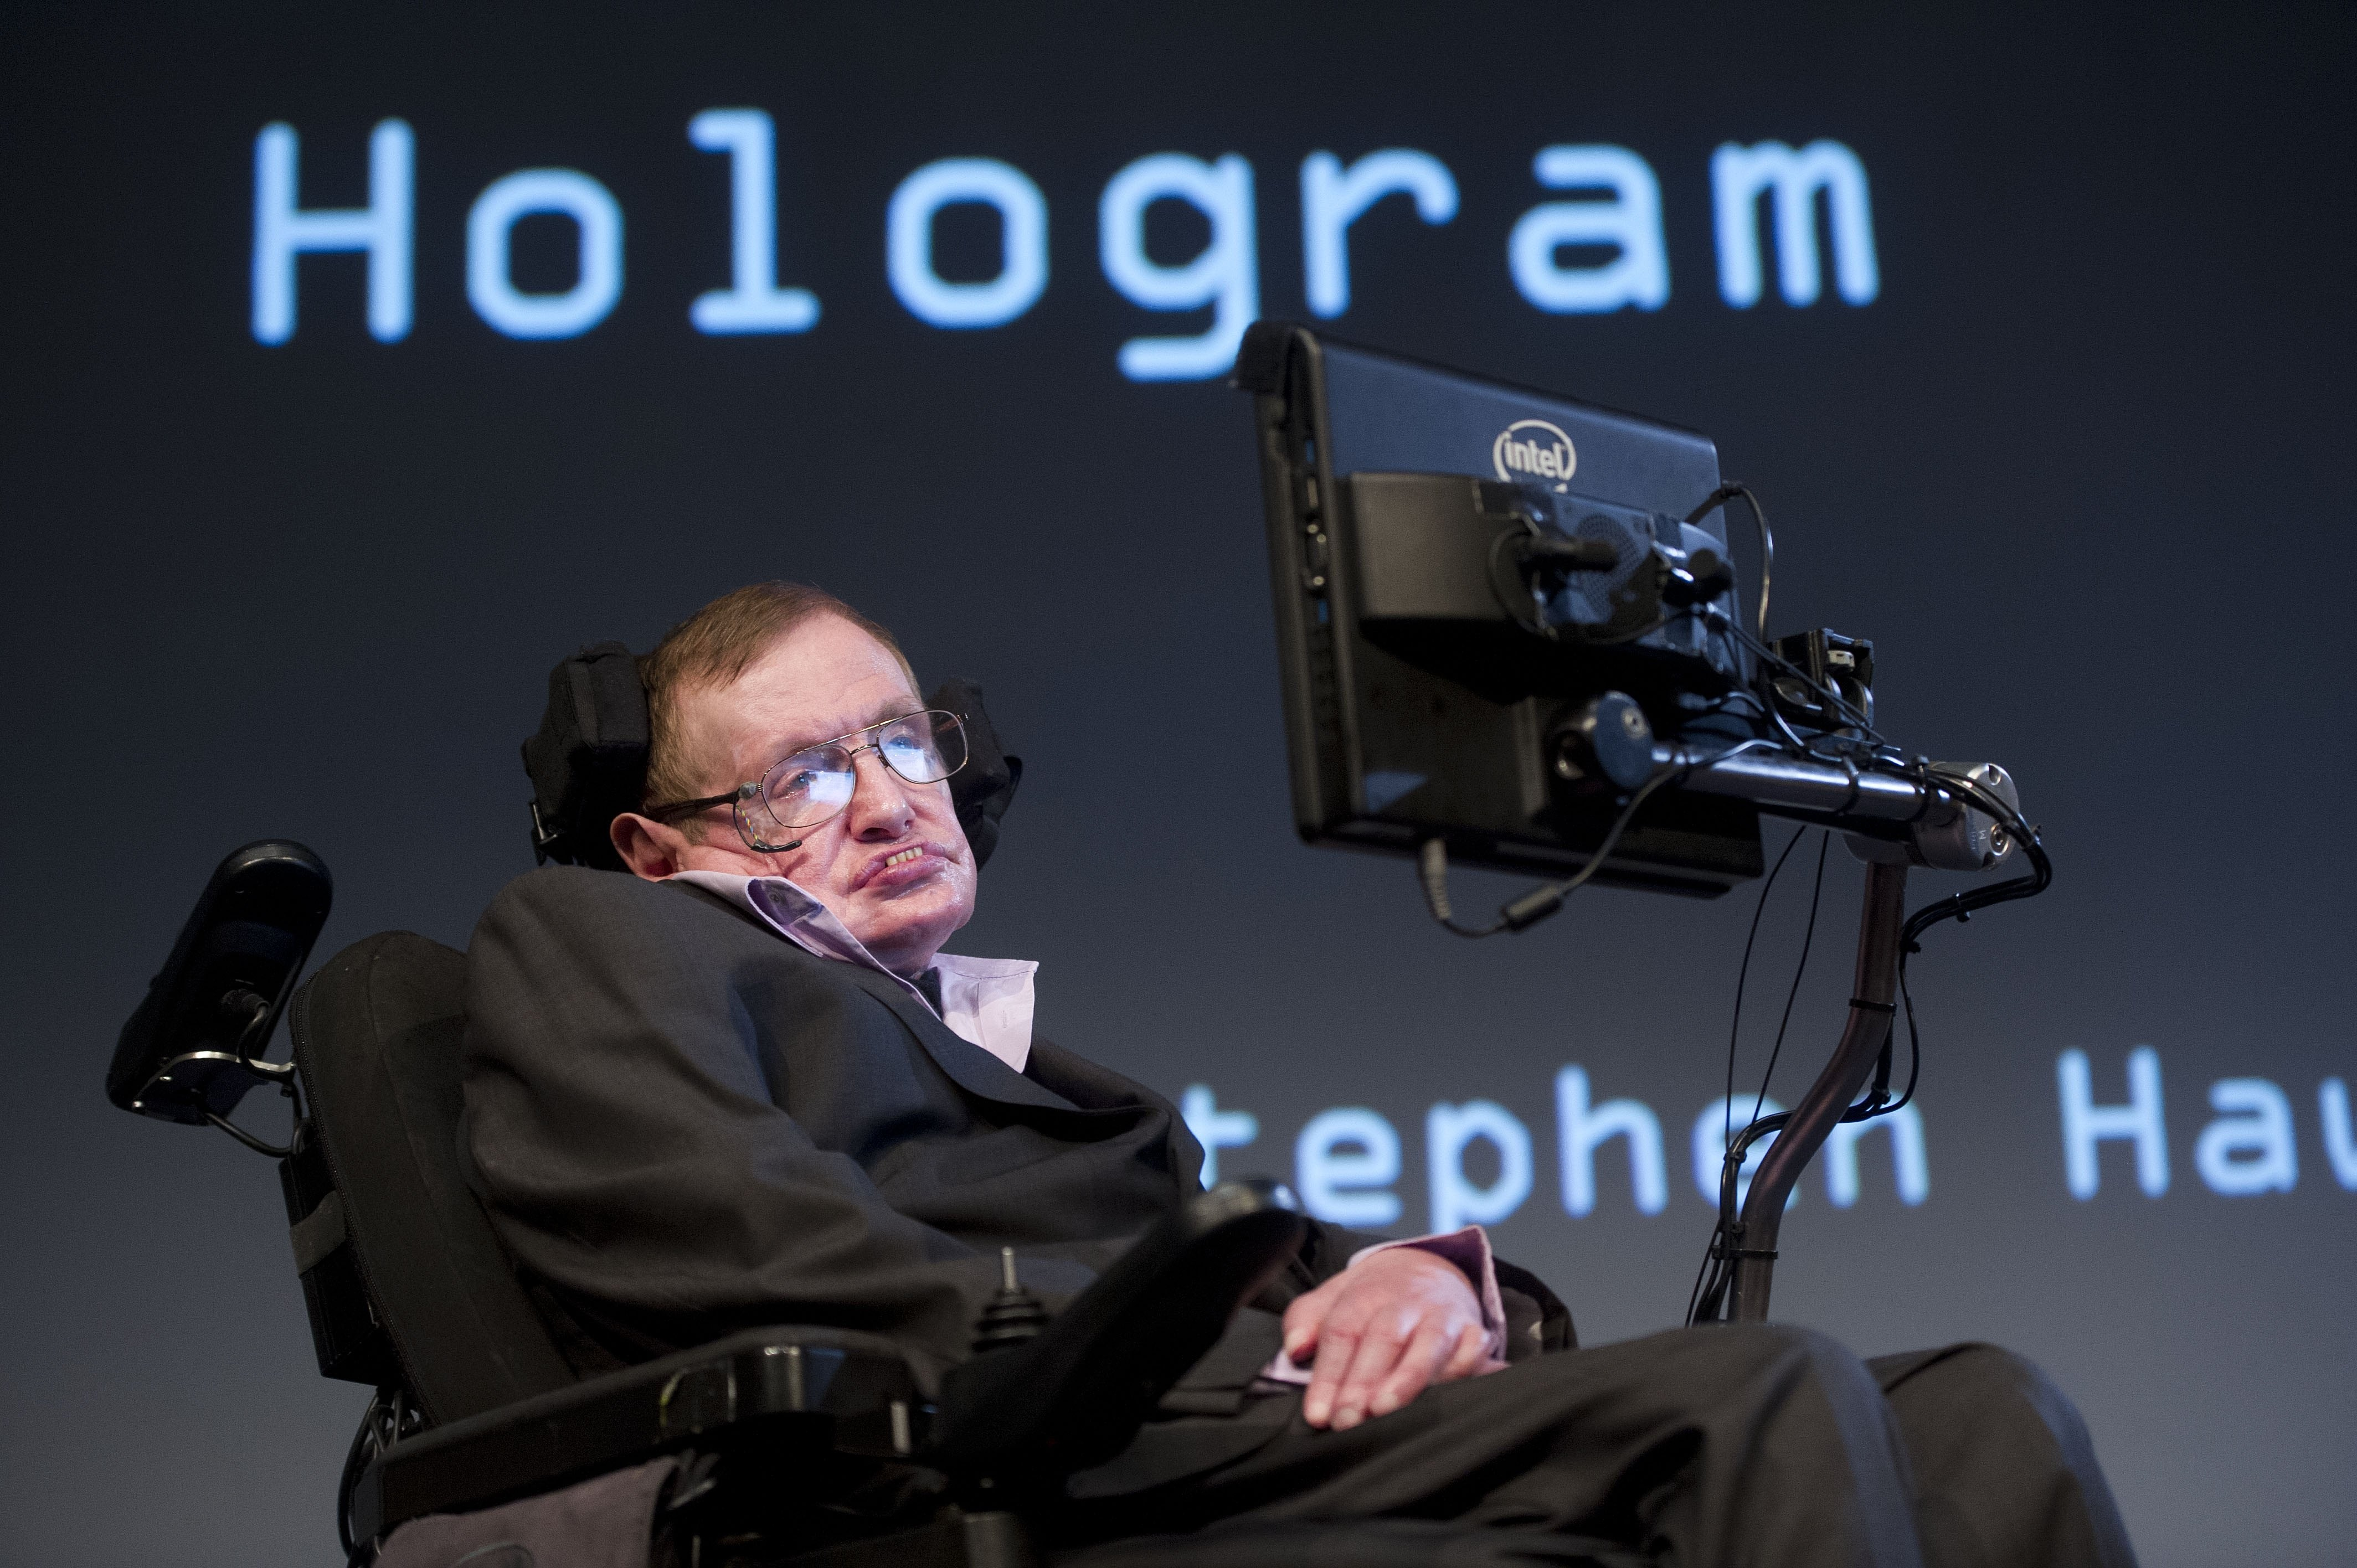 British theoretical physicist professor Stephen Hawking attends a symposium in Amsterdam on May 23, 2014.